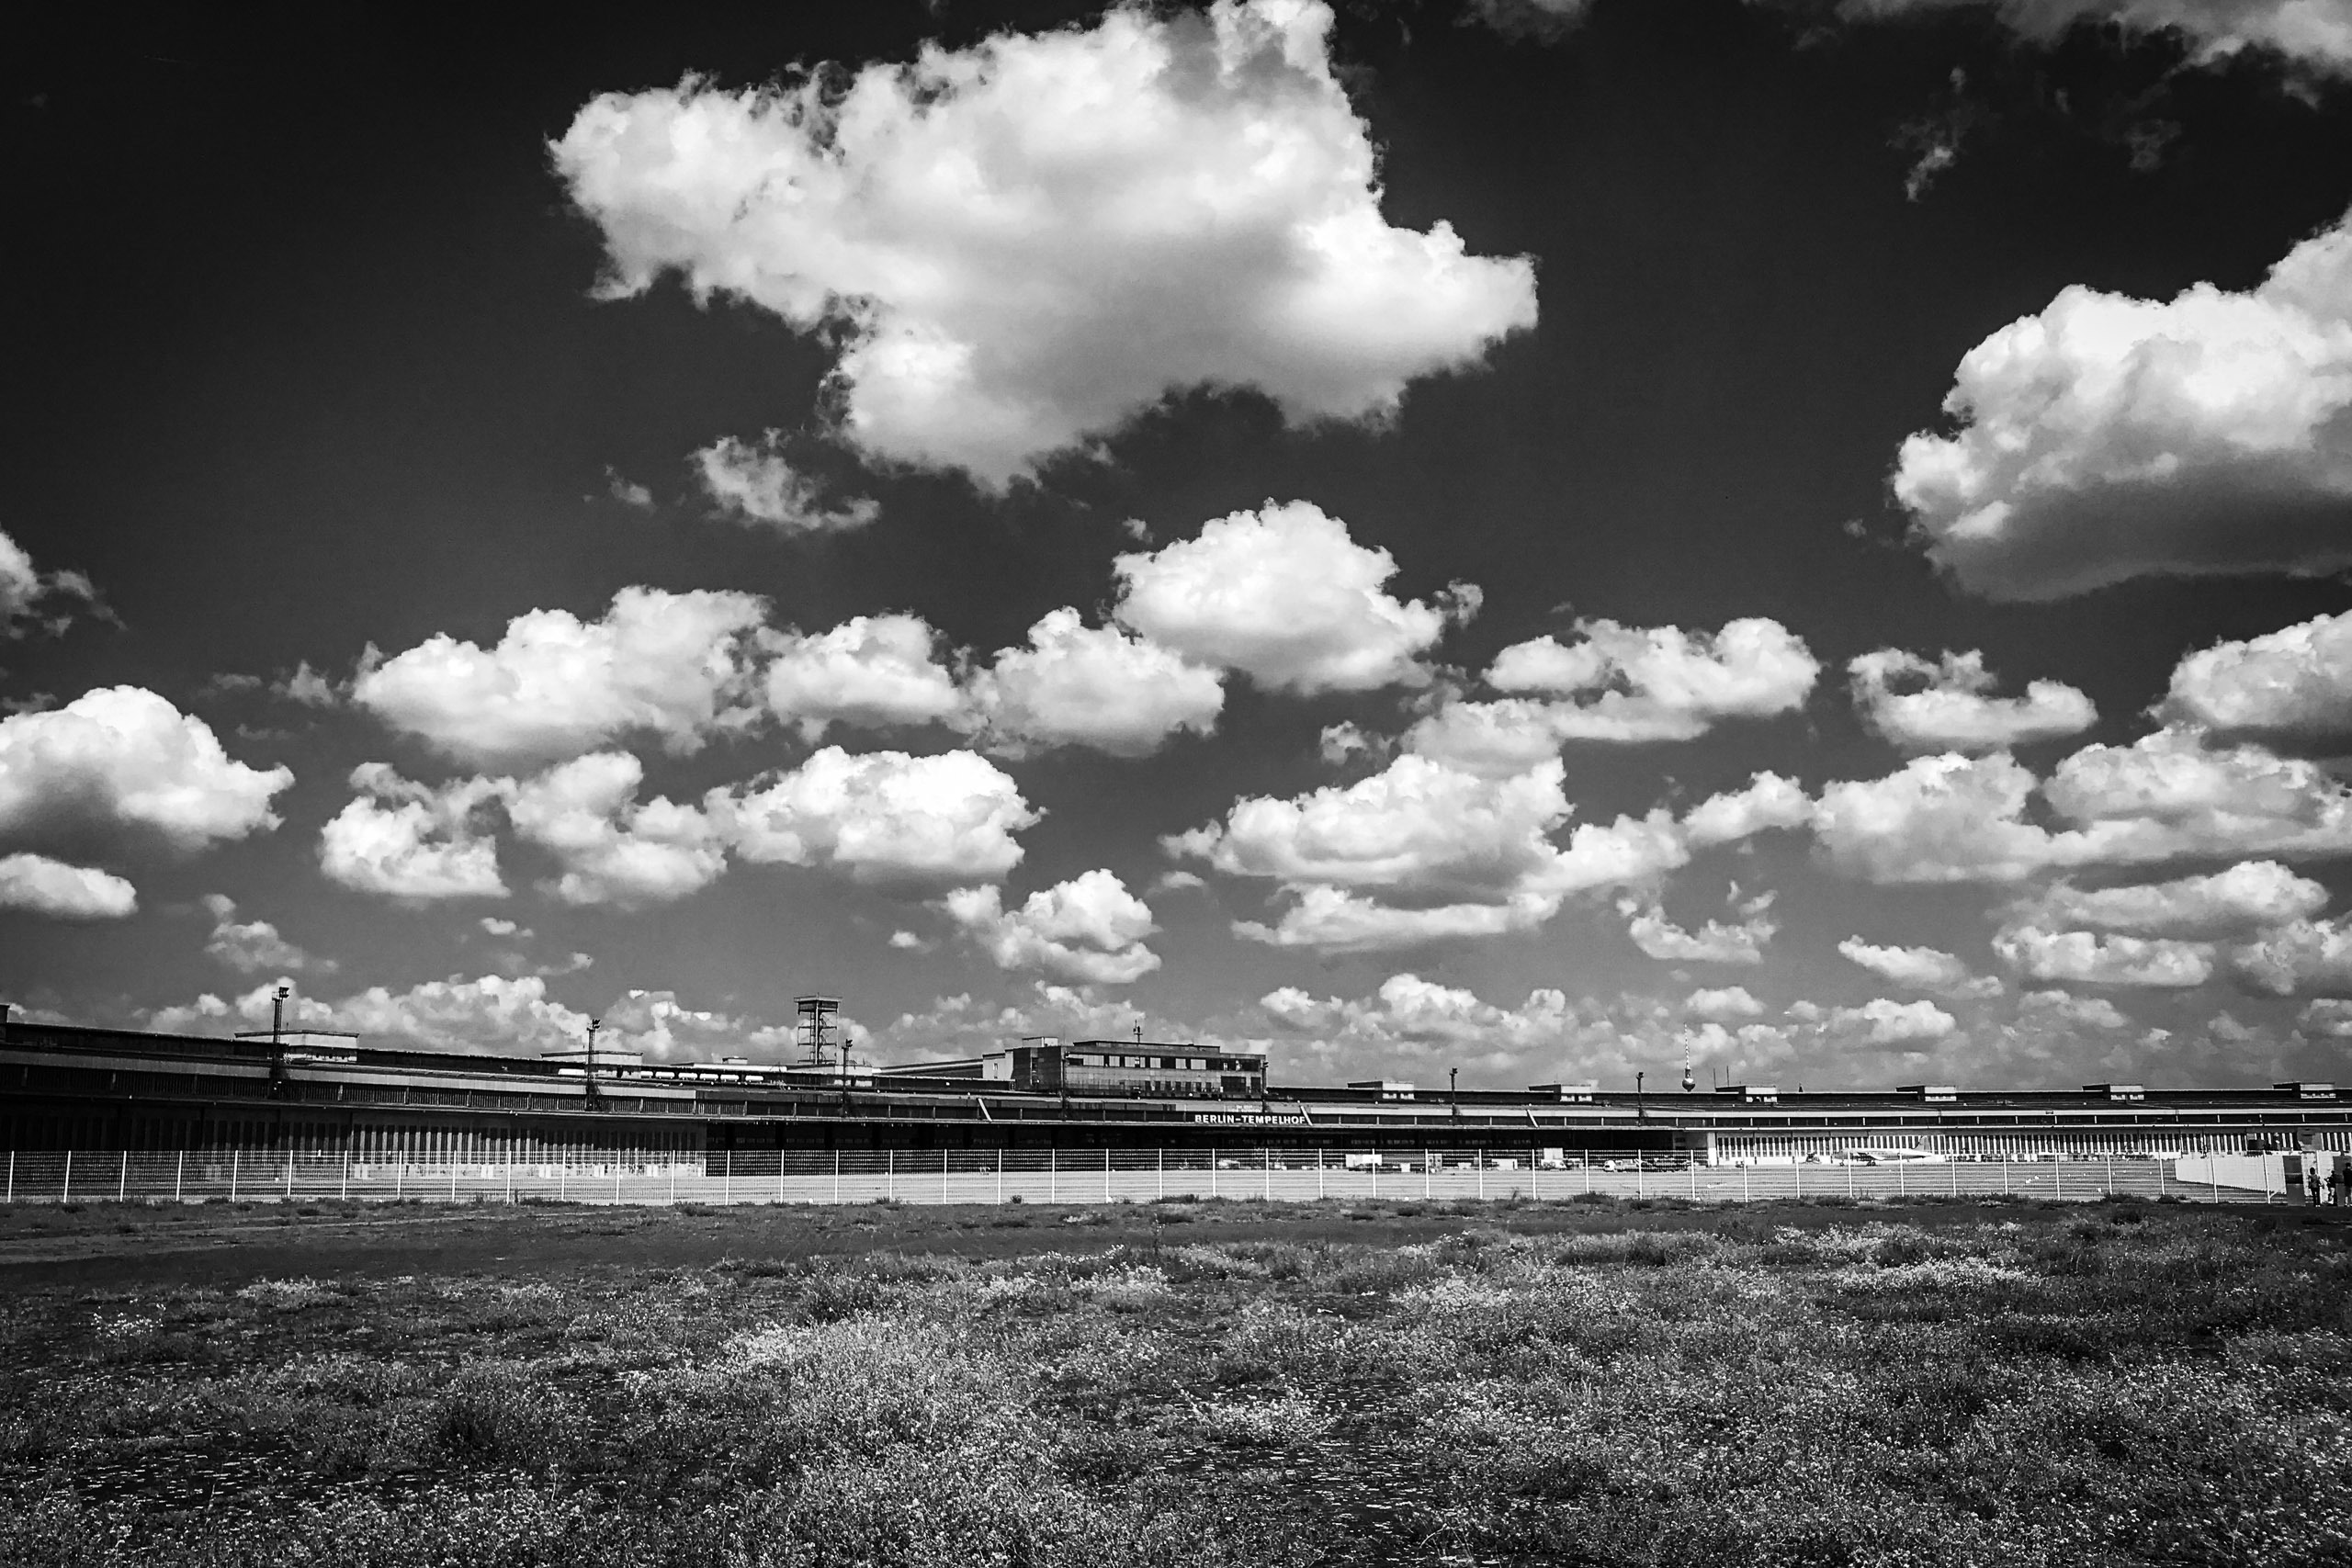 Tempelhoferfeld, Berlin, Germany